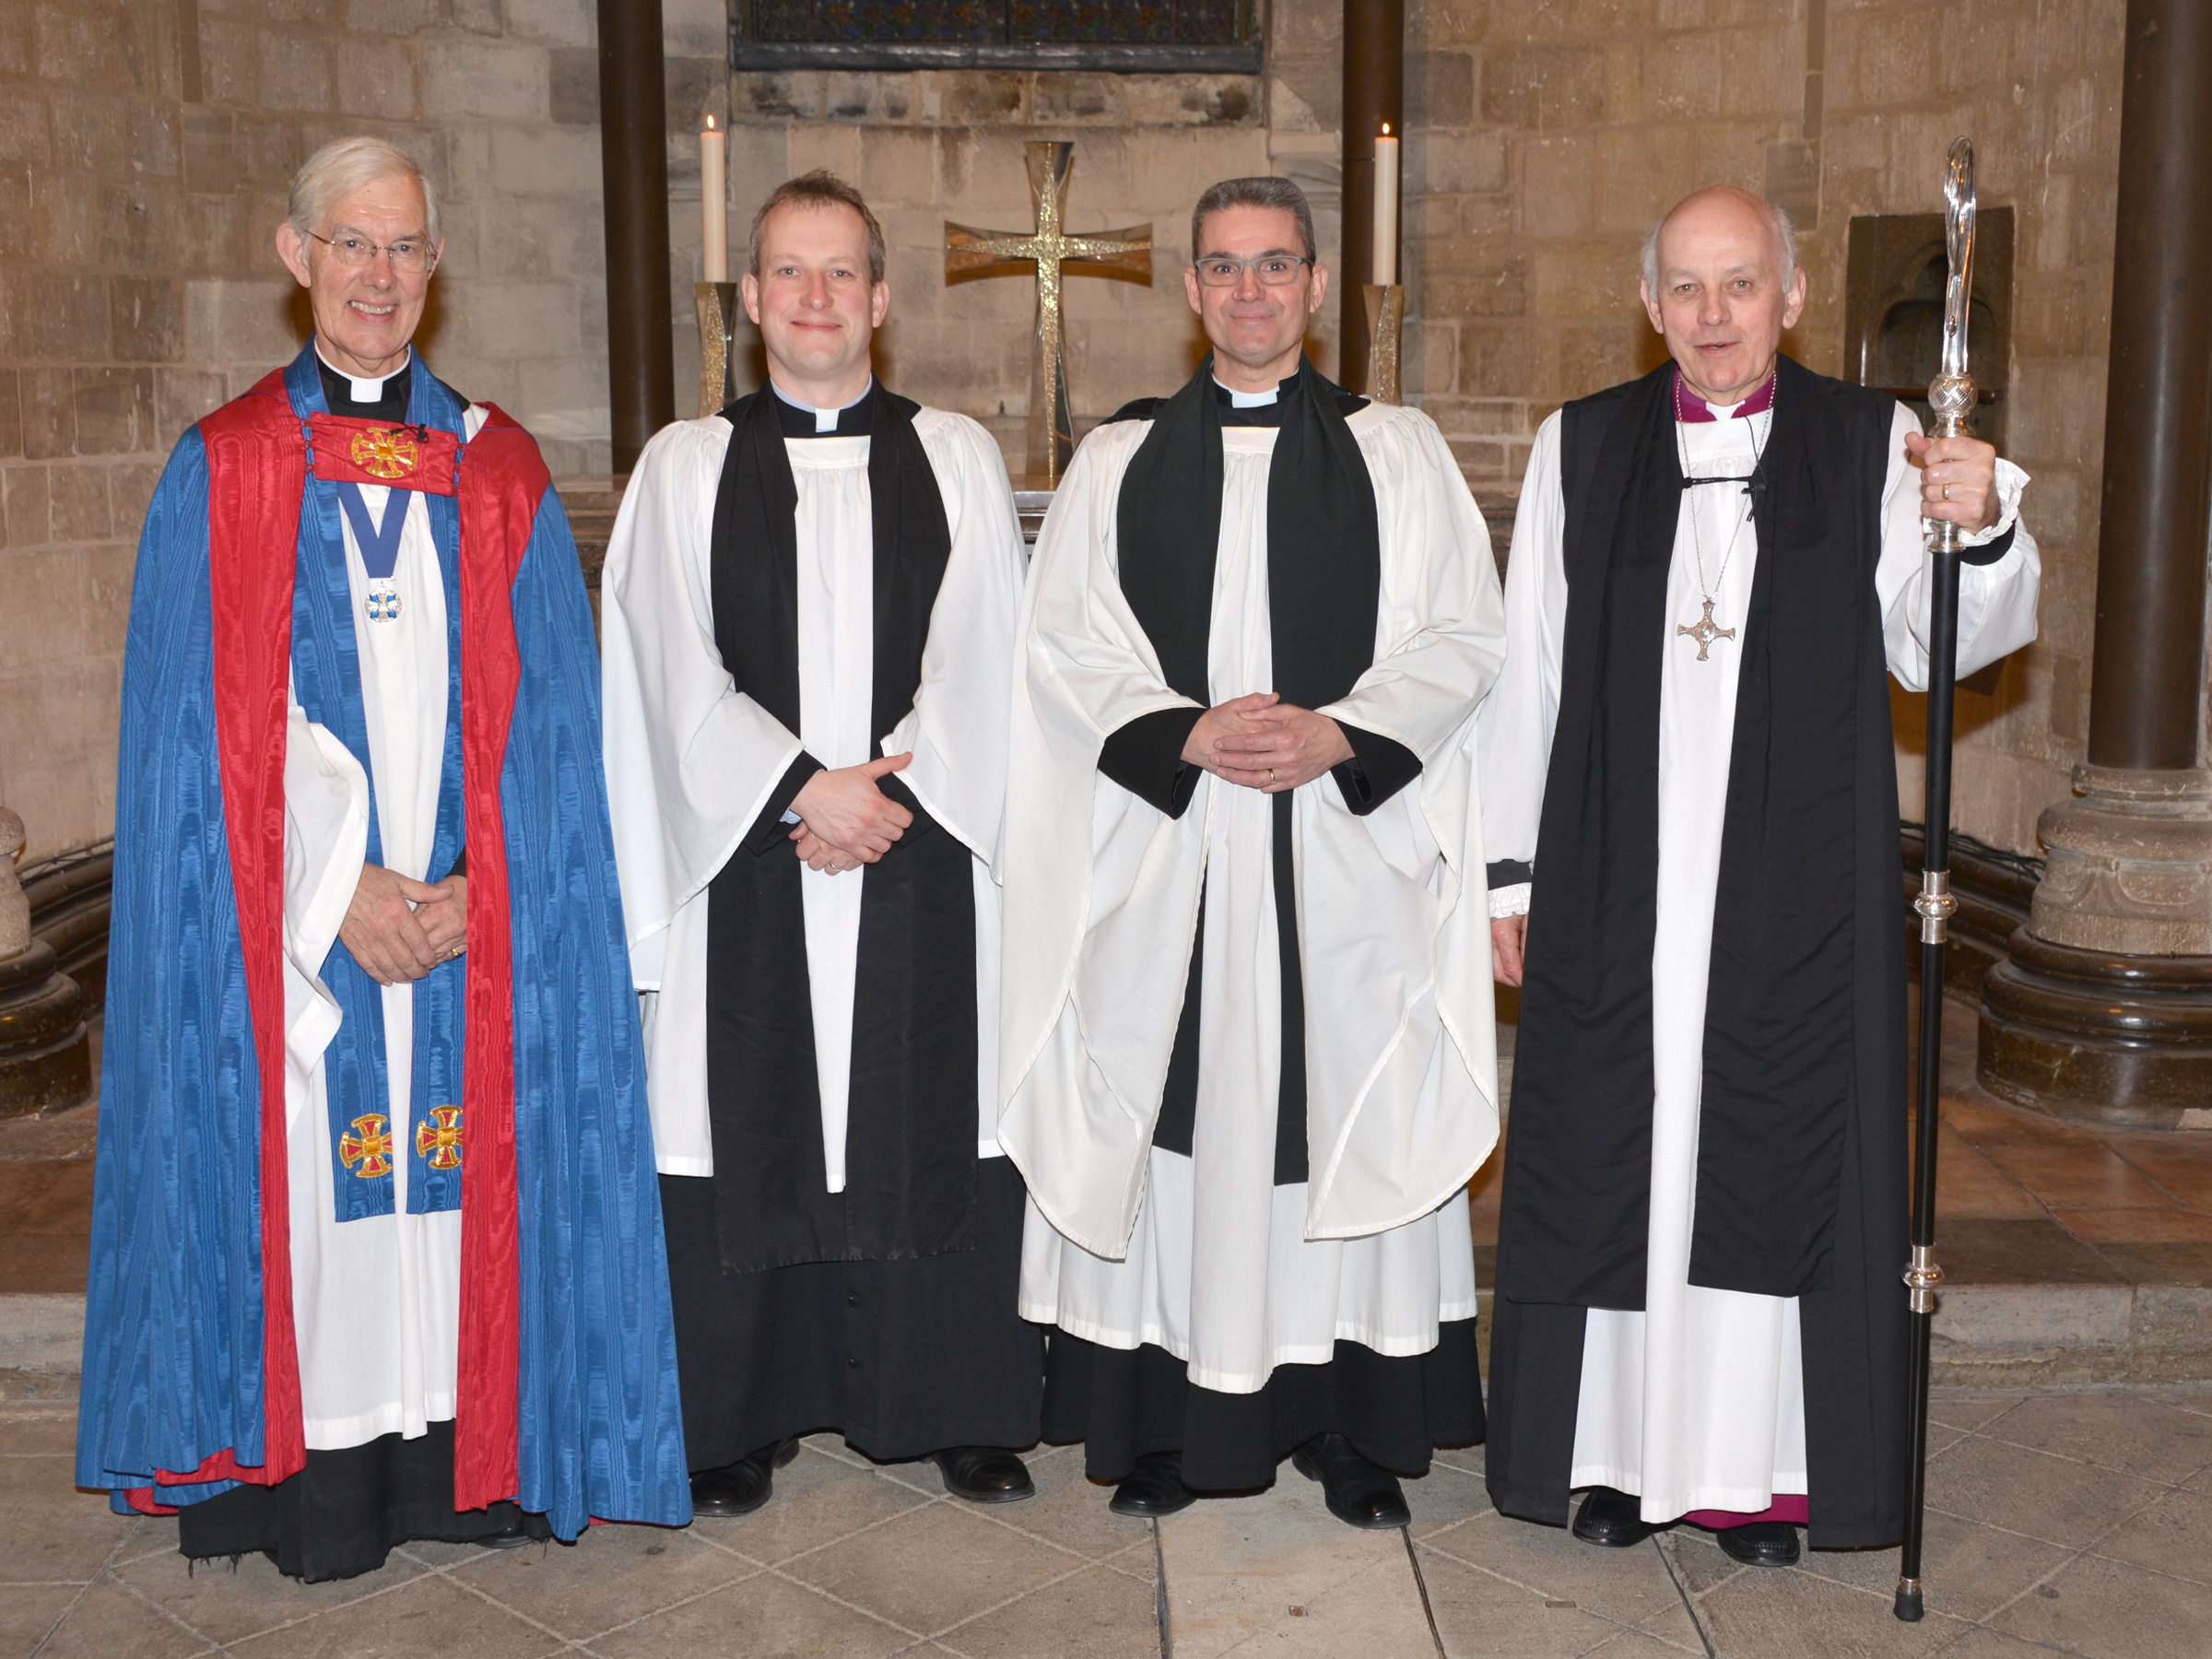 Walmer and Canterbury vicars join Cathedral Foundation